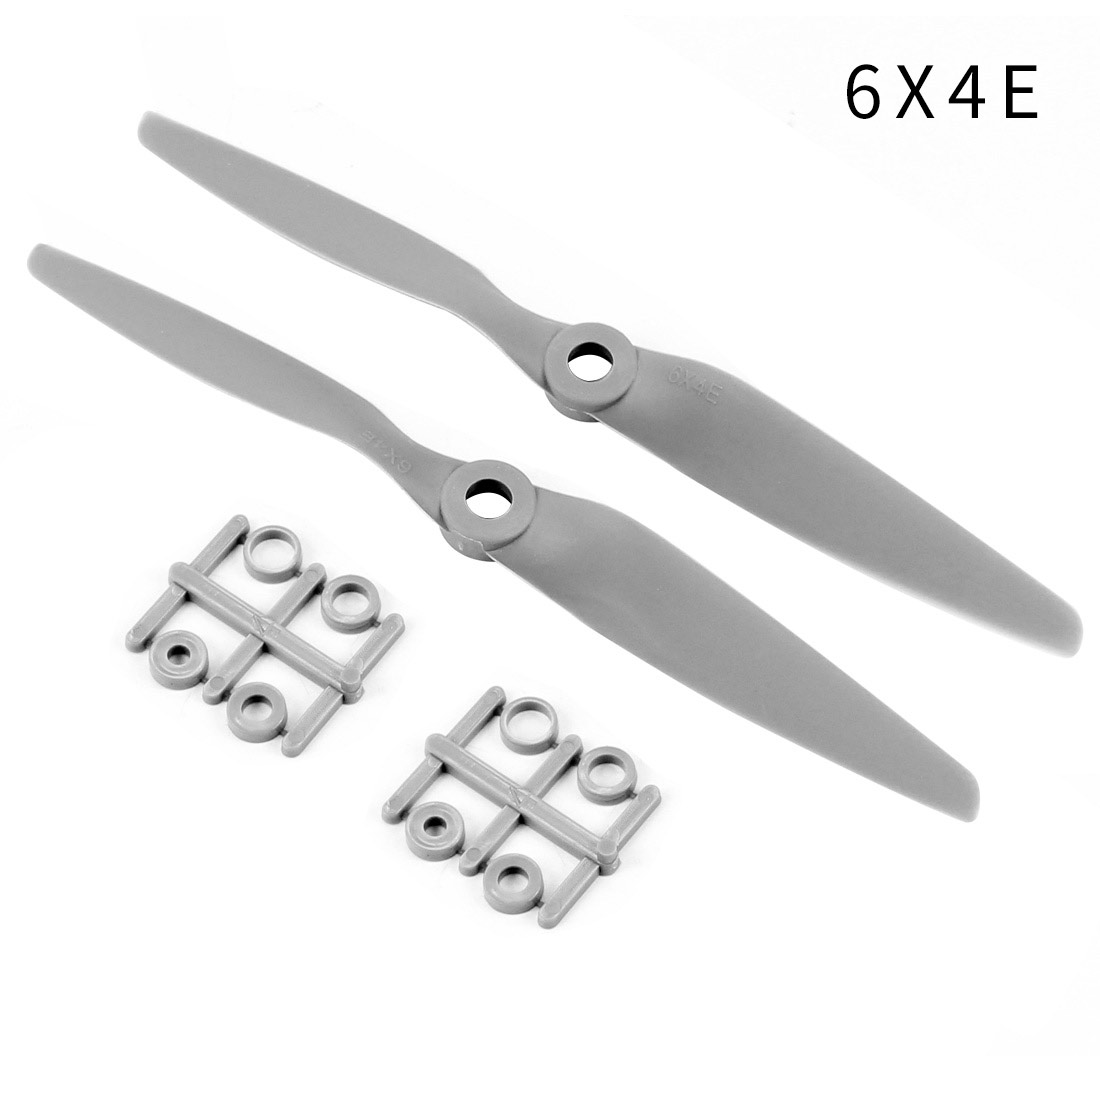 2Pairs GEMFAN Propeller 5 6 7 <font><b>8</b></font> 9 10 11 12 <font><b>13</b></font> 14 Inch High Speed Props for APC RC Racing Drone Aircraft Parts image